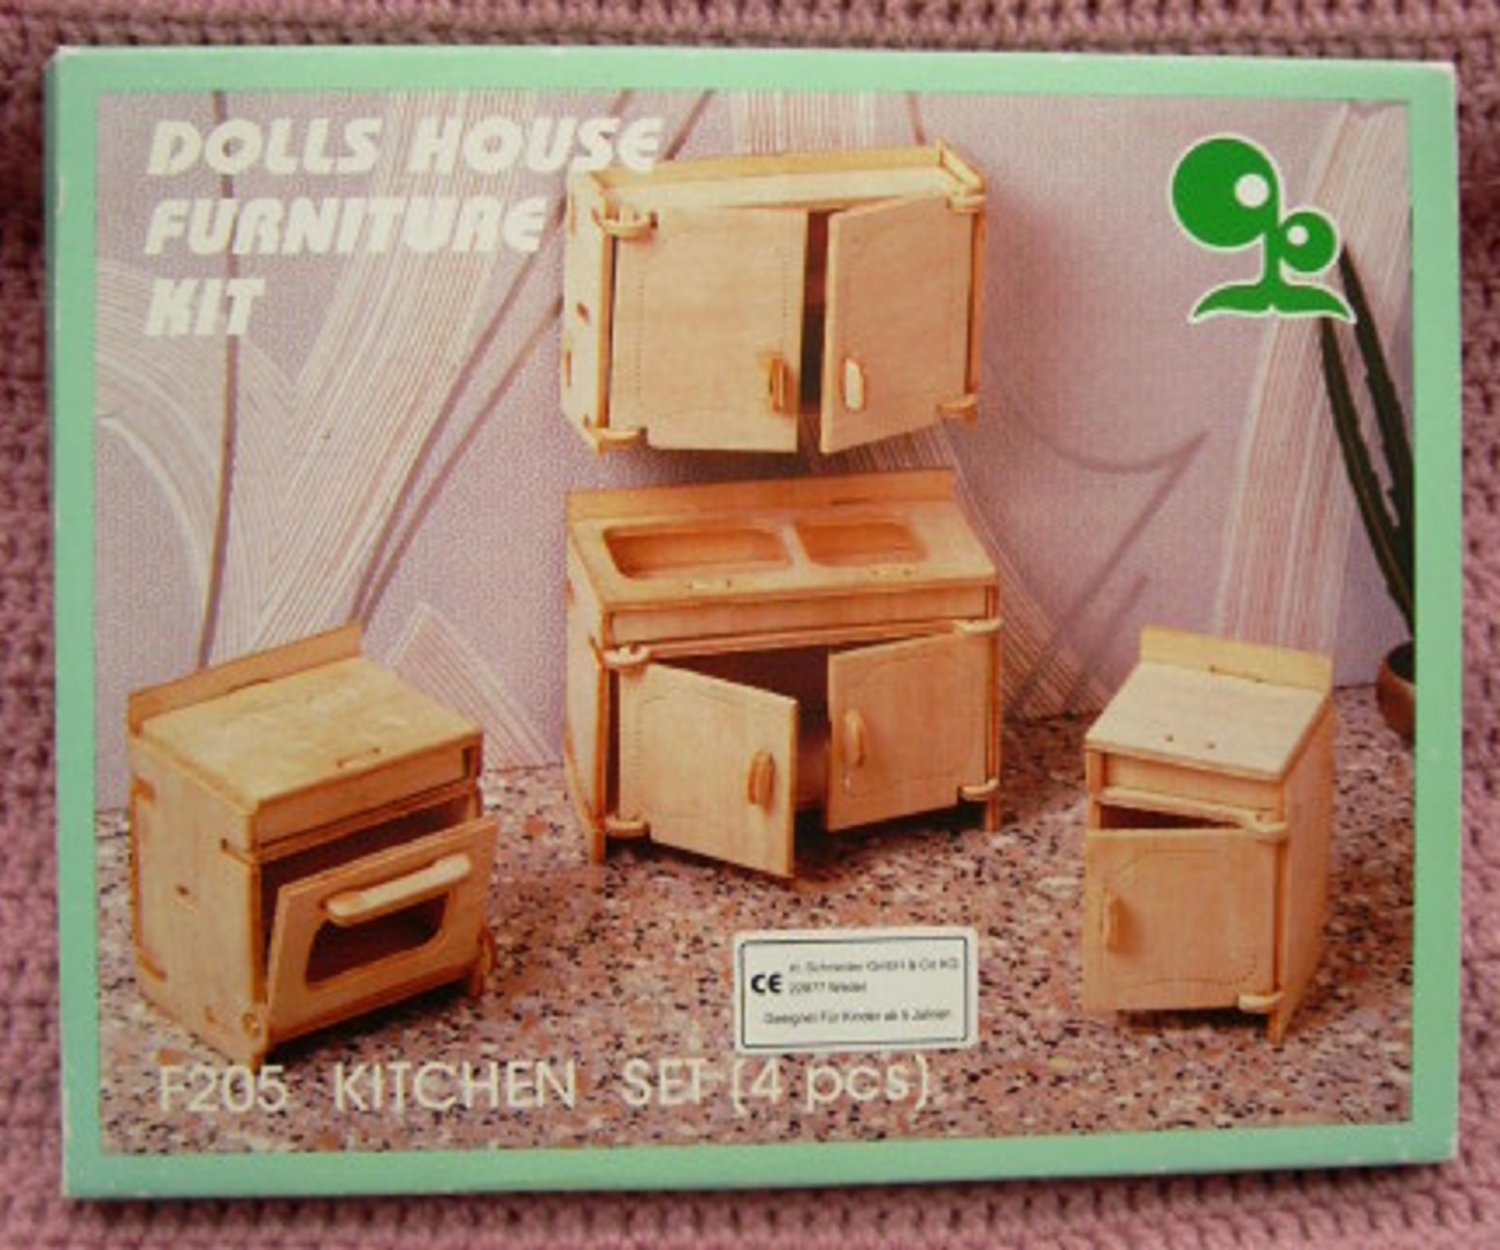 dolls house furniture kit kitchen set puppenhaus k chen m bel buch gebraucht kaufen. Black Bedroom Furniture Sets. Home Design Ideas